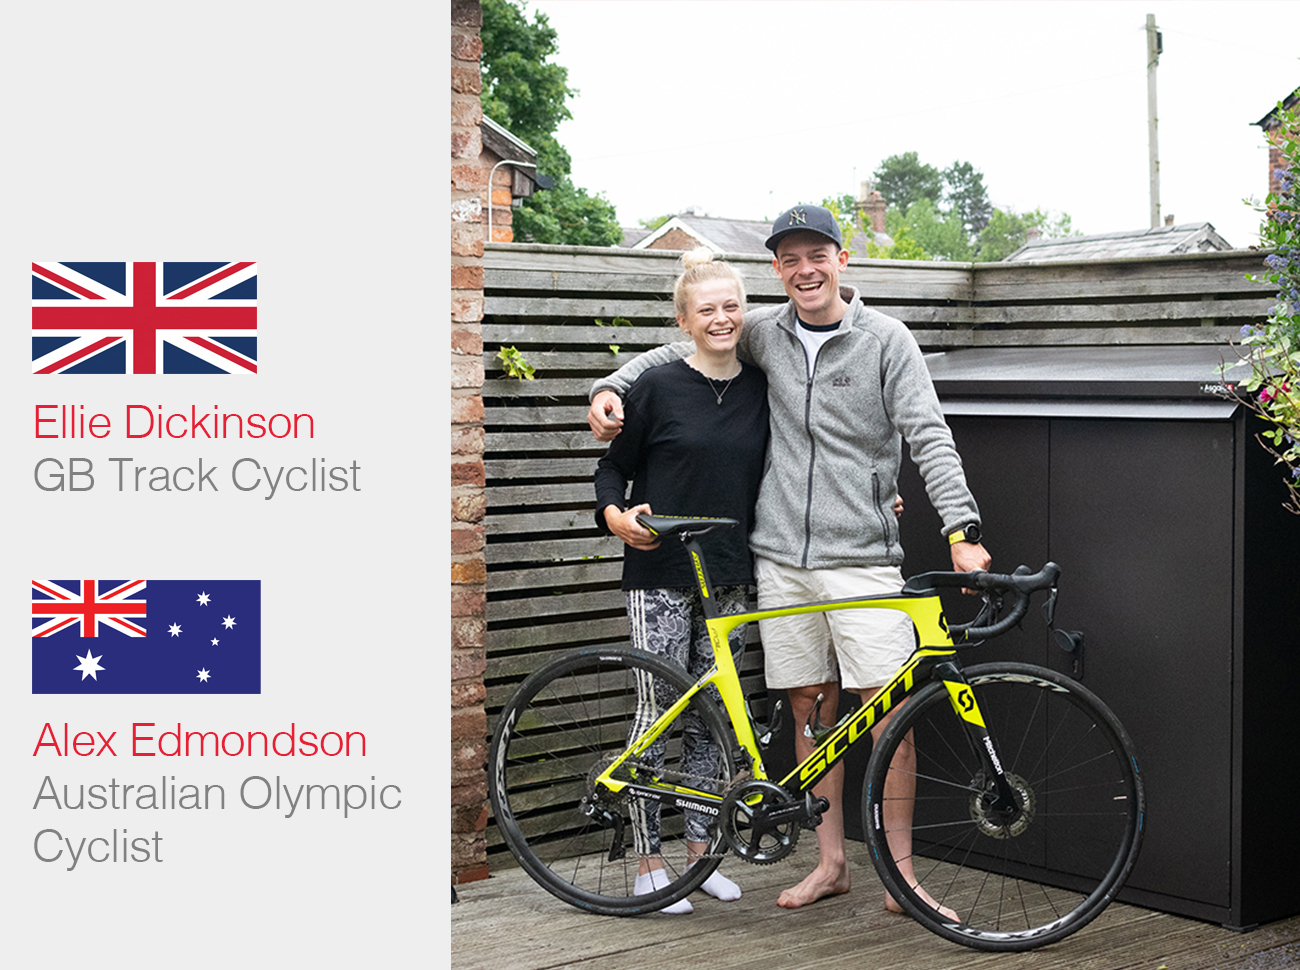 Australian Olympic cyclist Alex Edmondson and Team GB Ellie Dickinson